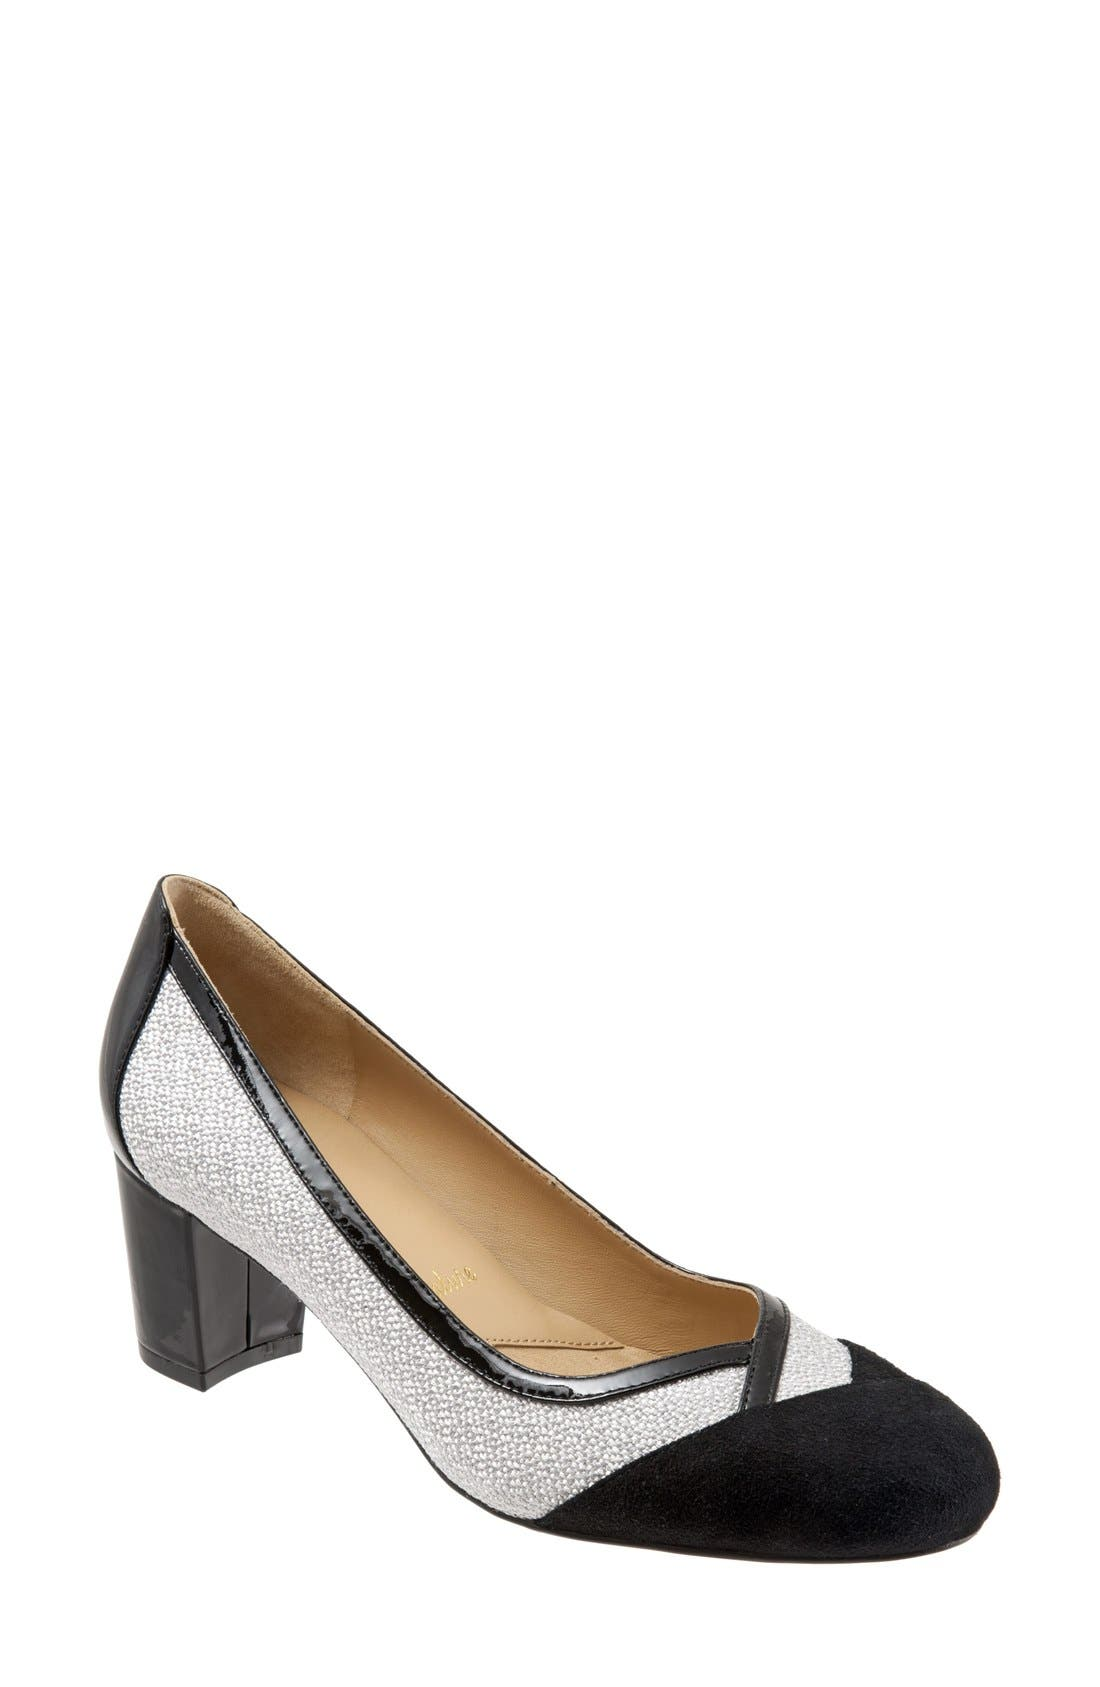 'Phoebe' Pump,                         Main,                         color, Black Suede